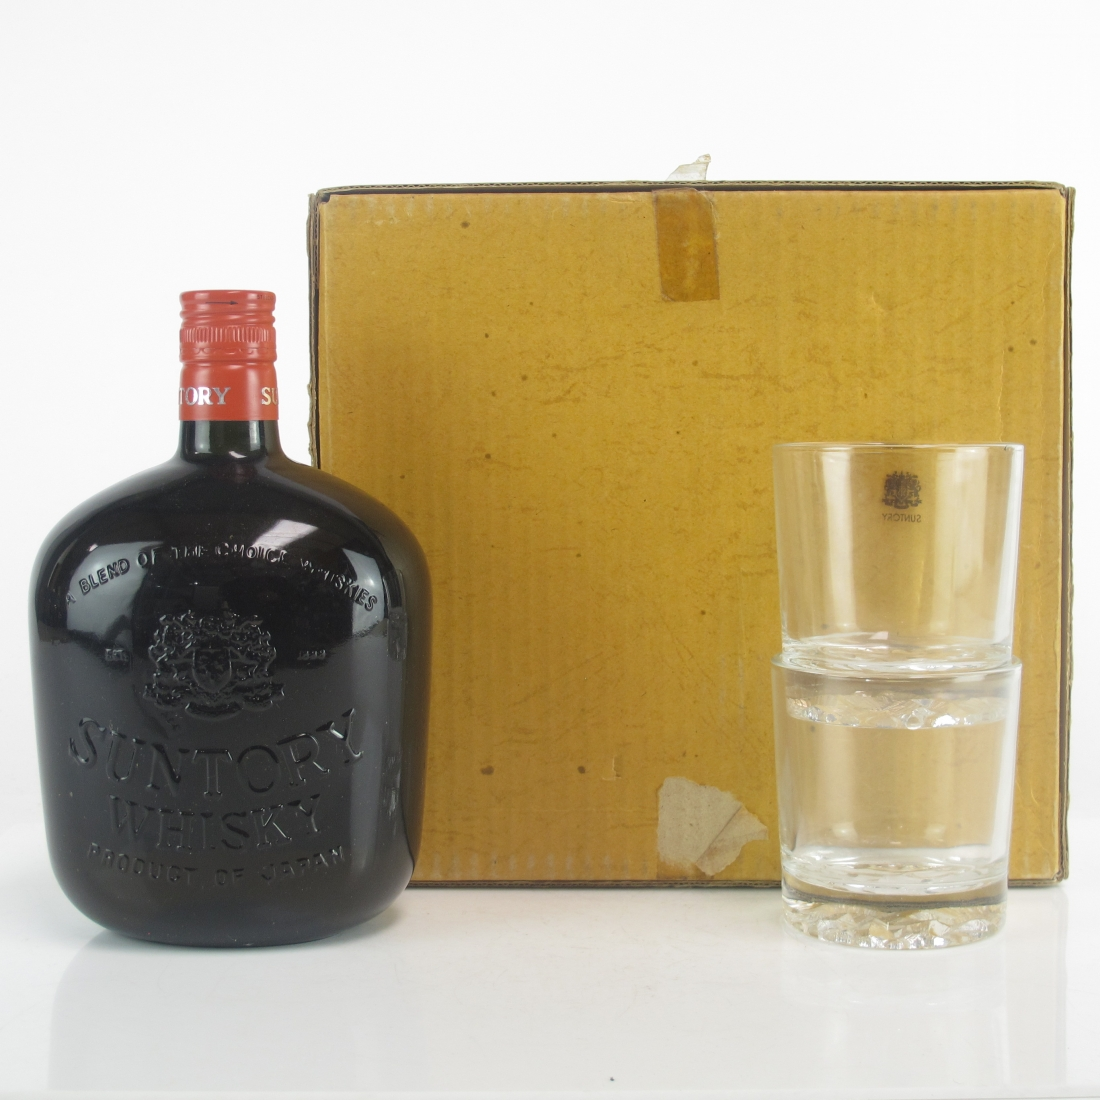 Suntory Yamazaki Very Rare Old 76cl 1970s / includes Glasses x 2